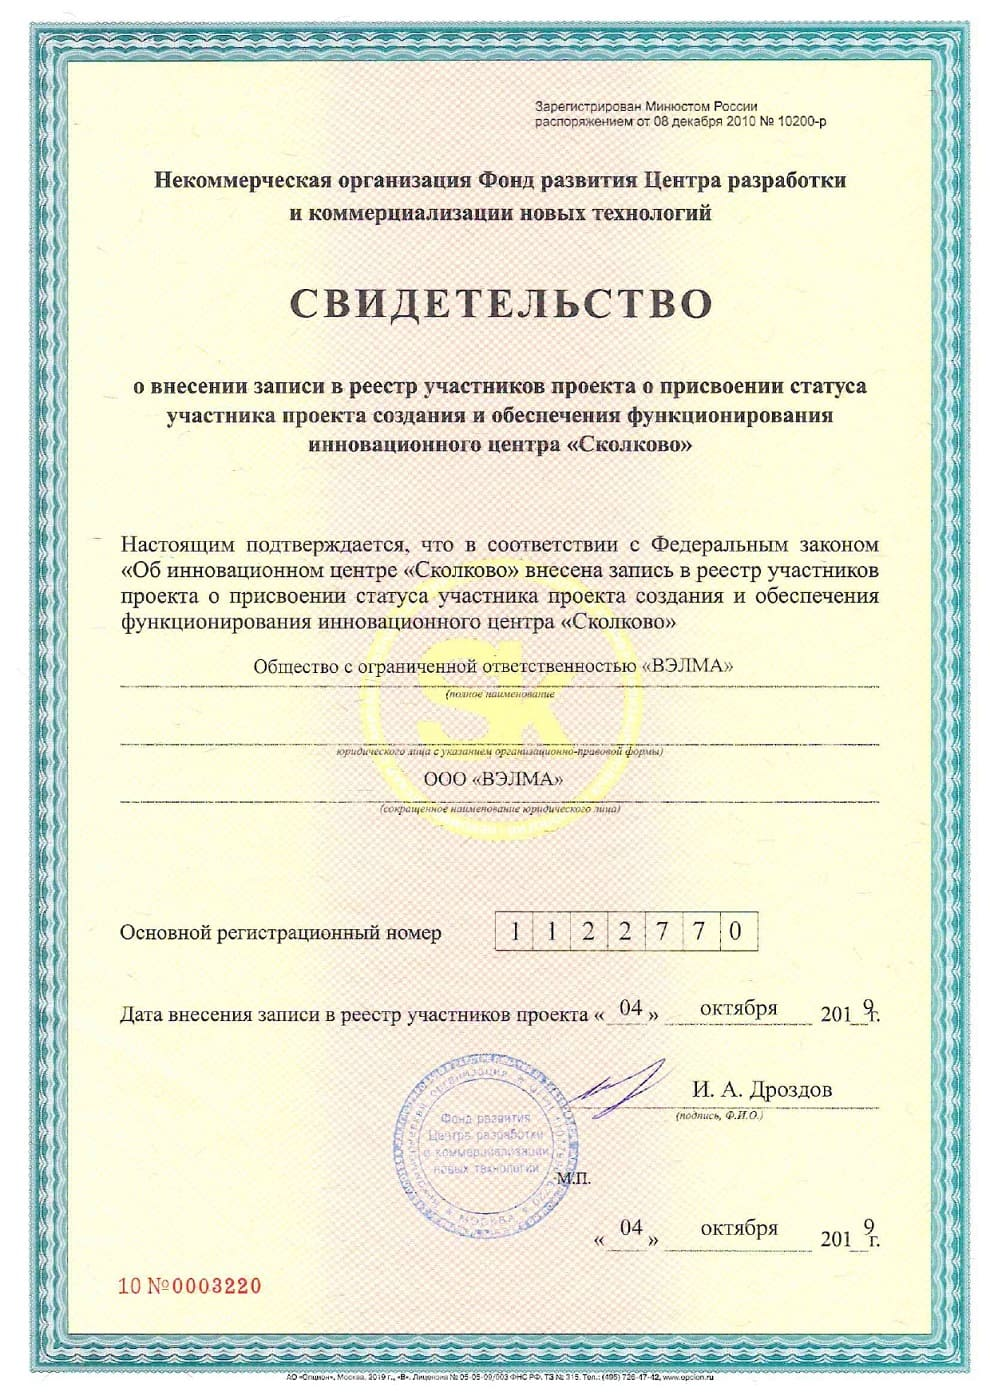 Certificate of Skolkovo project participant